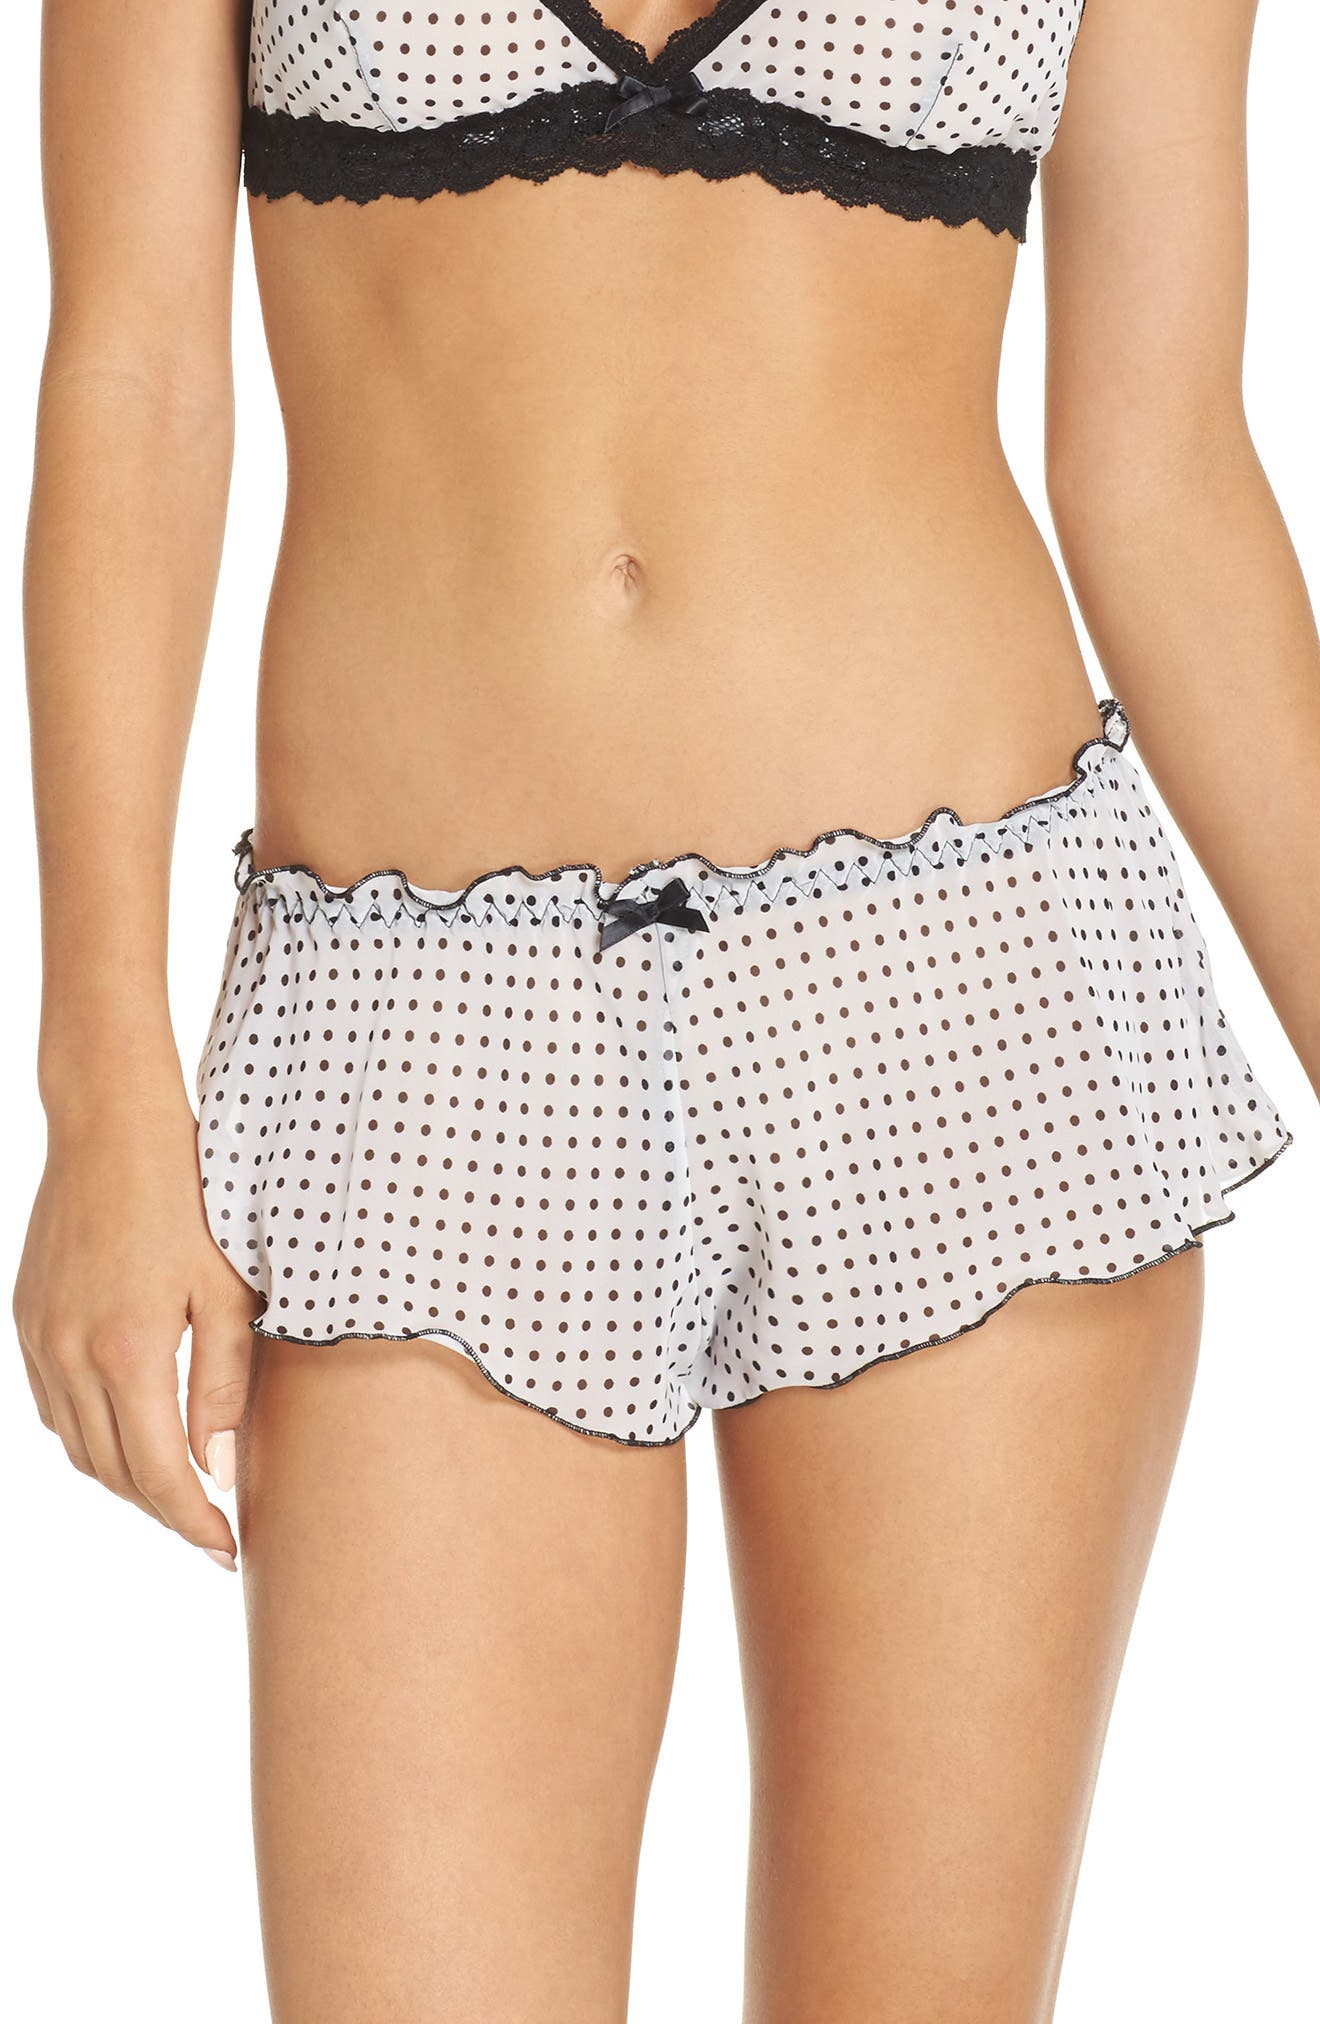 Alternate Image 1 Selected - Hanky Panky Spot On Chiffon Tap Shorts